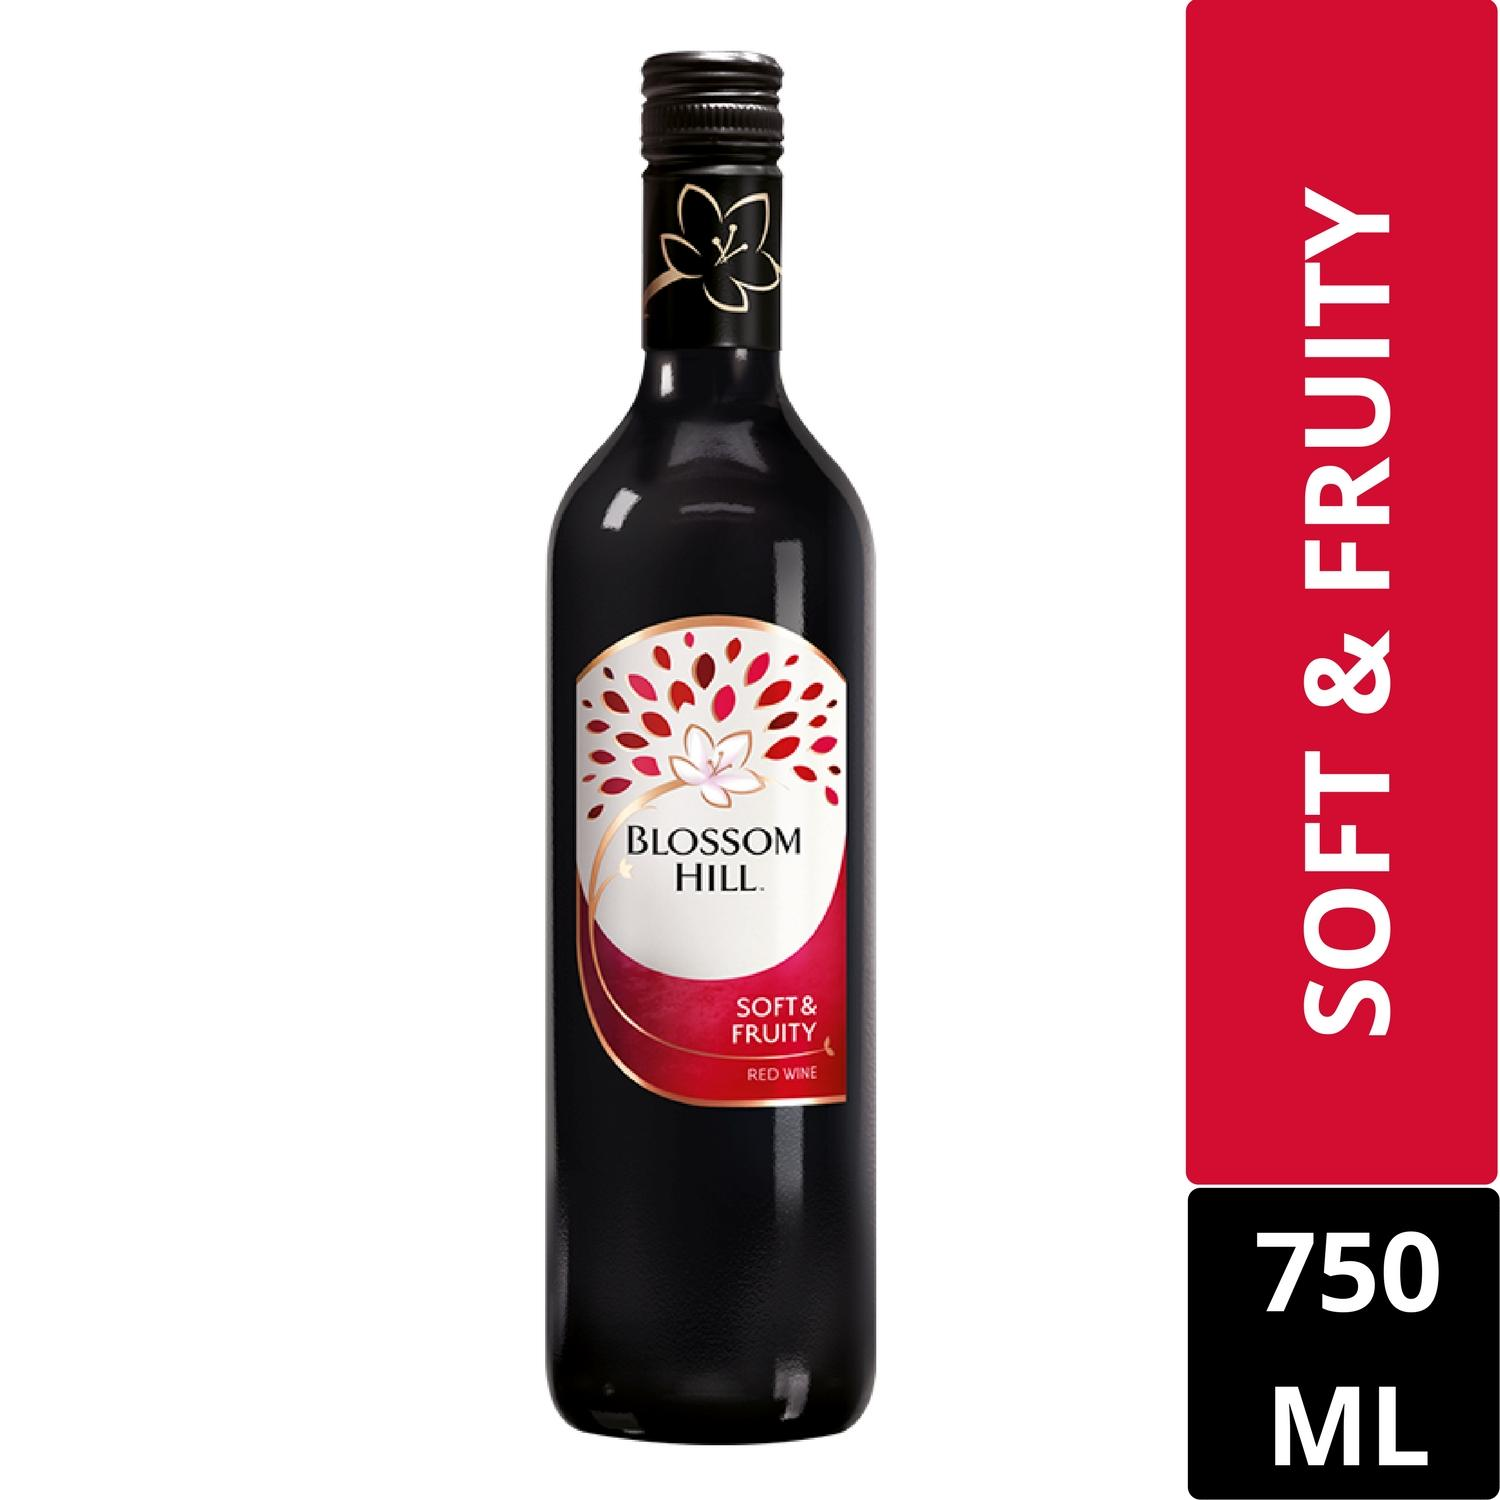 Blossom Hill Soft Fruity Red Wine 750Ml In Stock